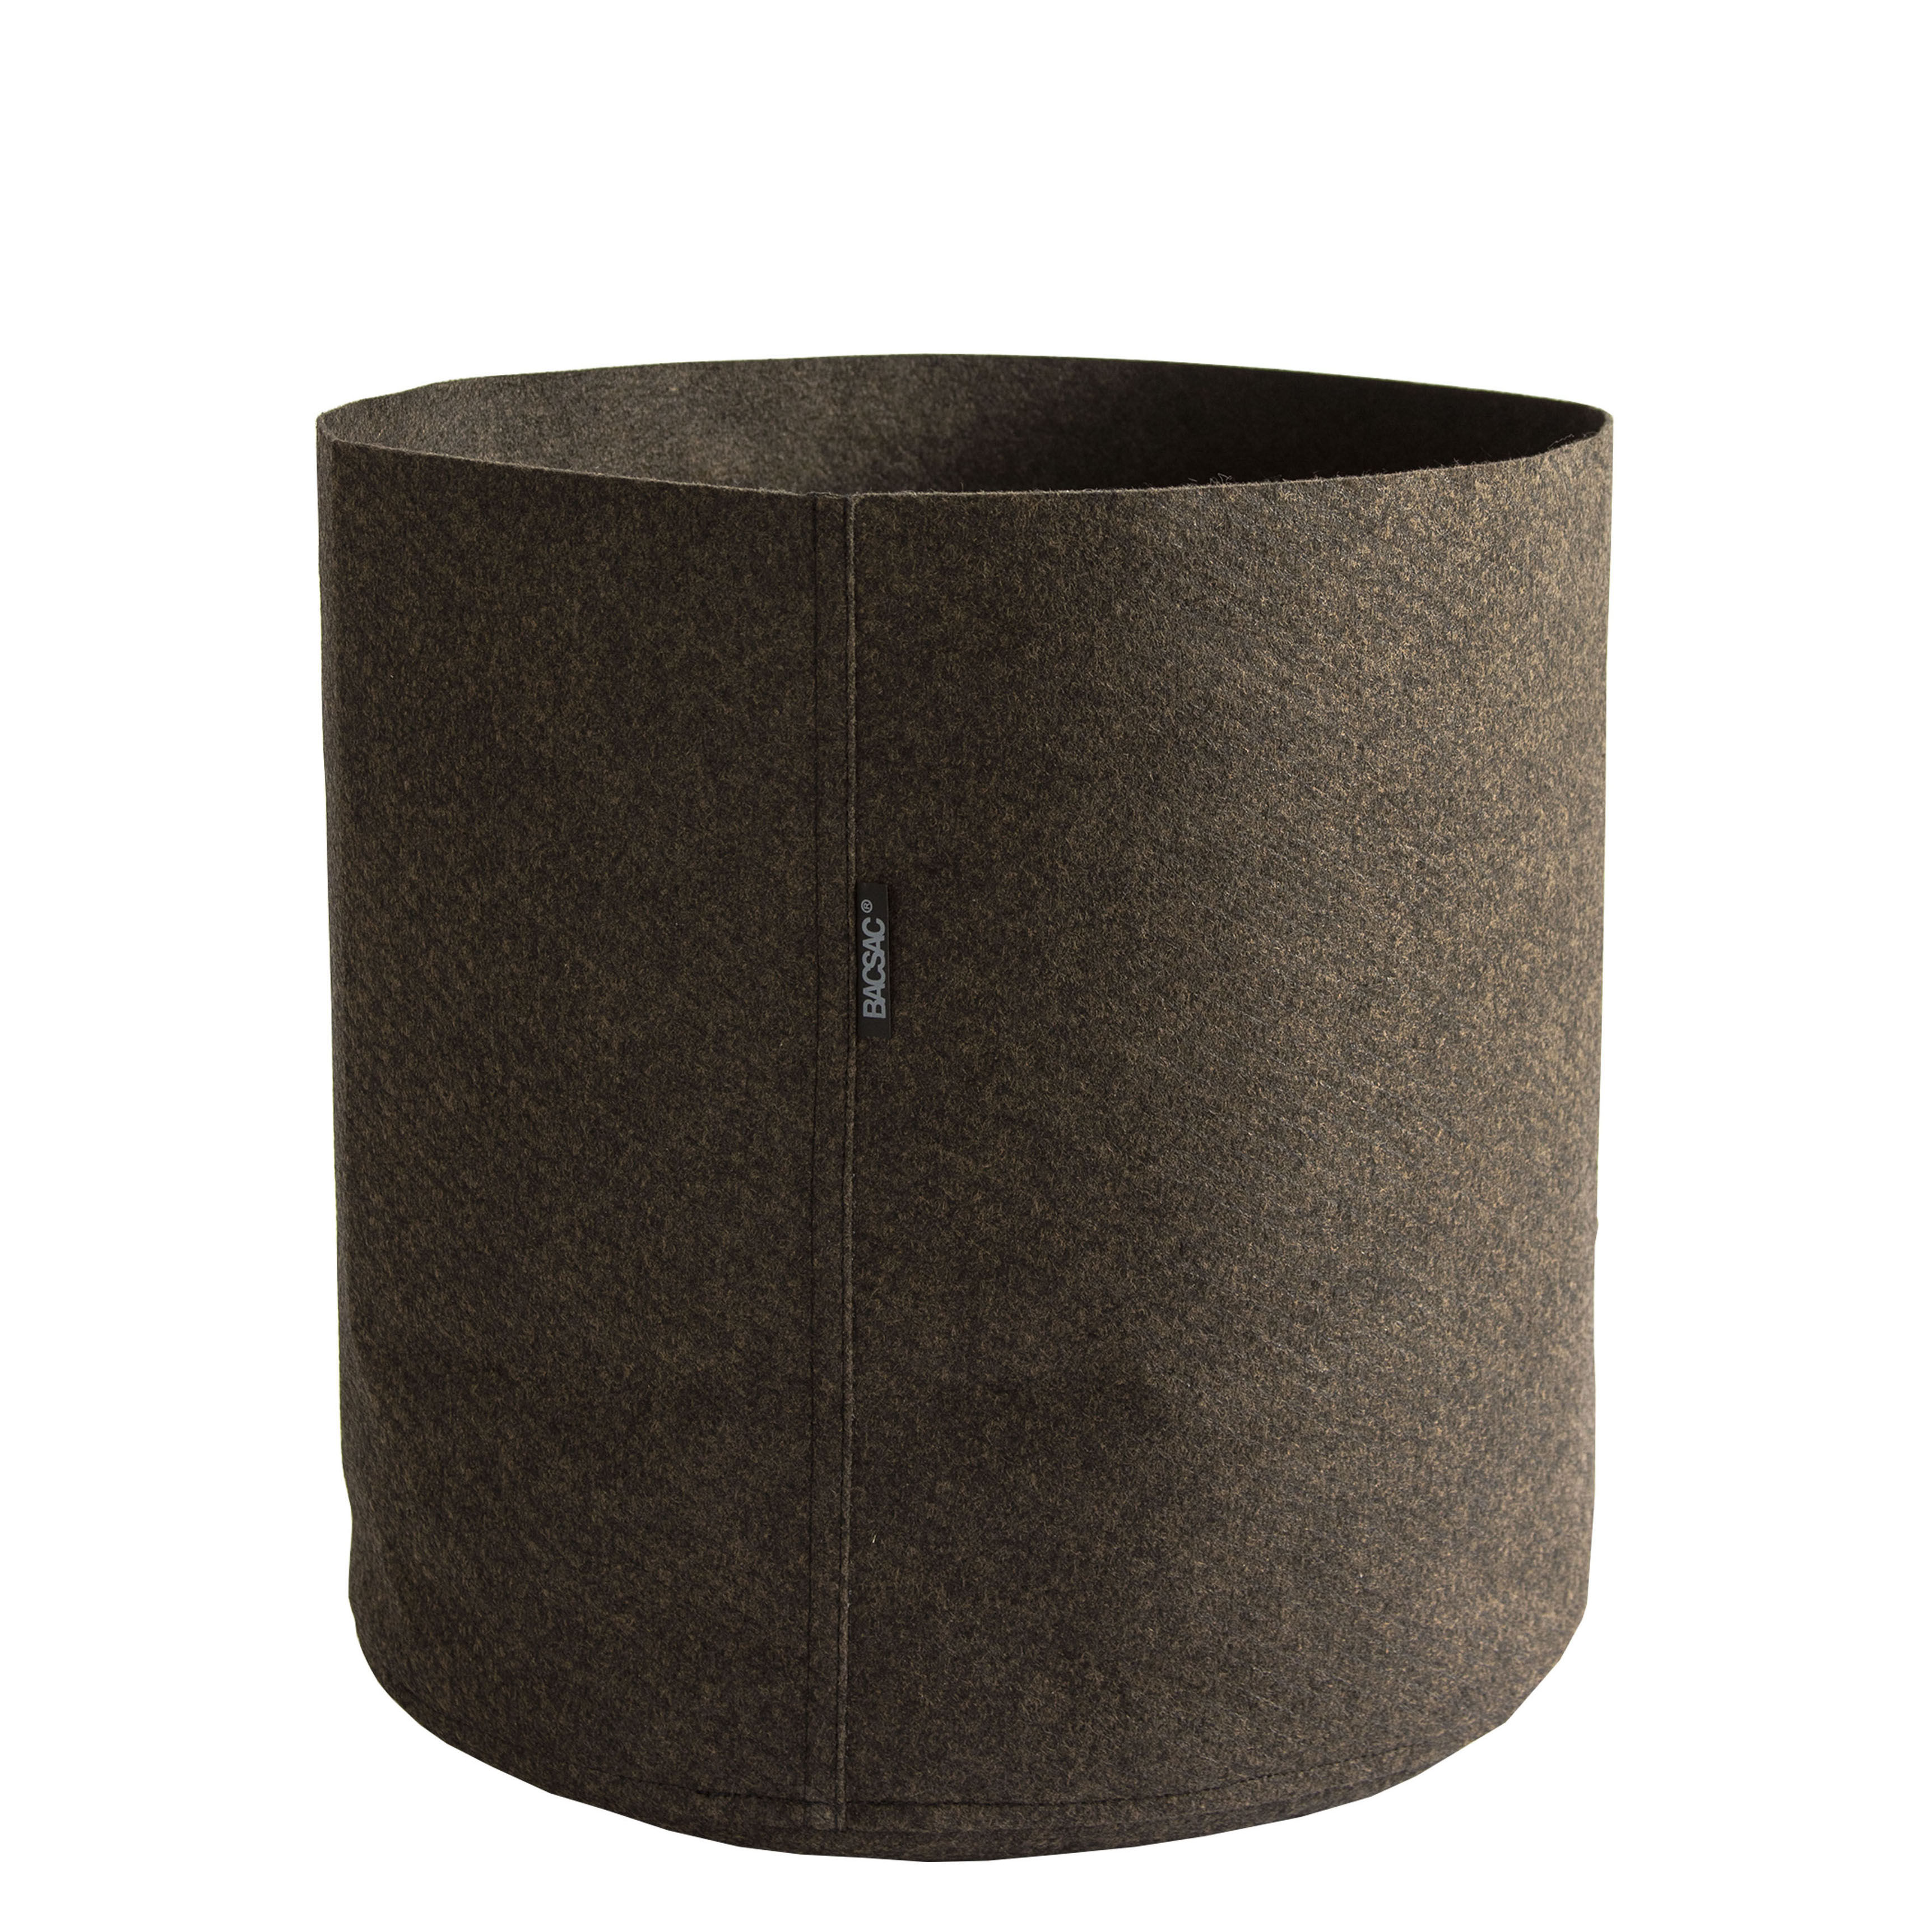 Humus feutre flowerpot 50 l 50 l brown by bacsac for Cache pot design interieur